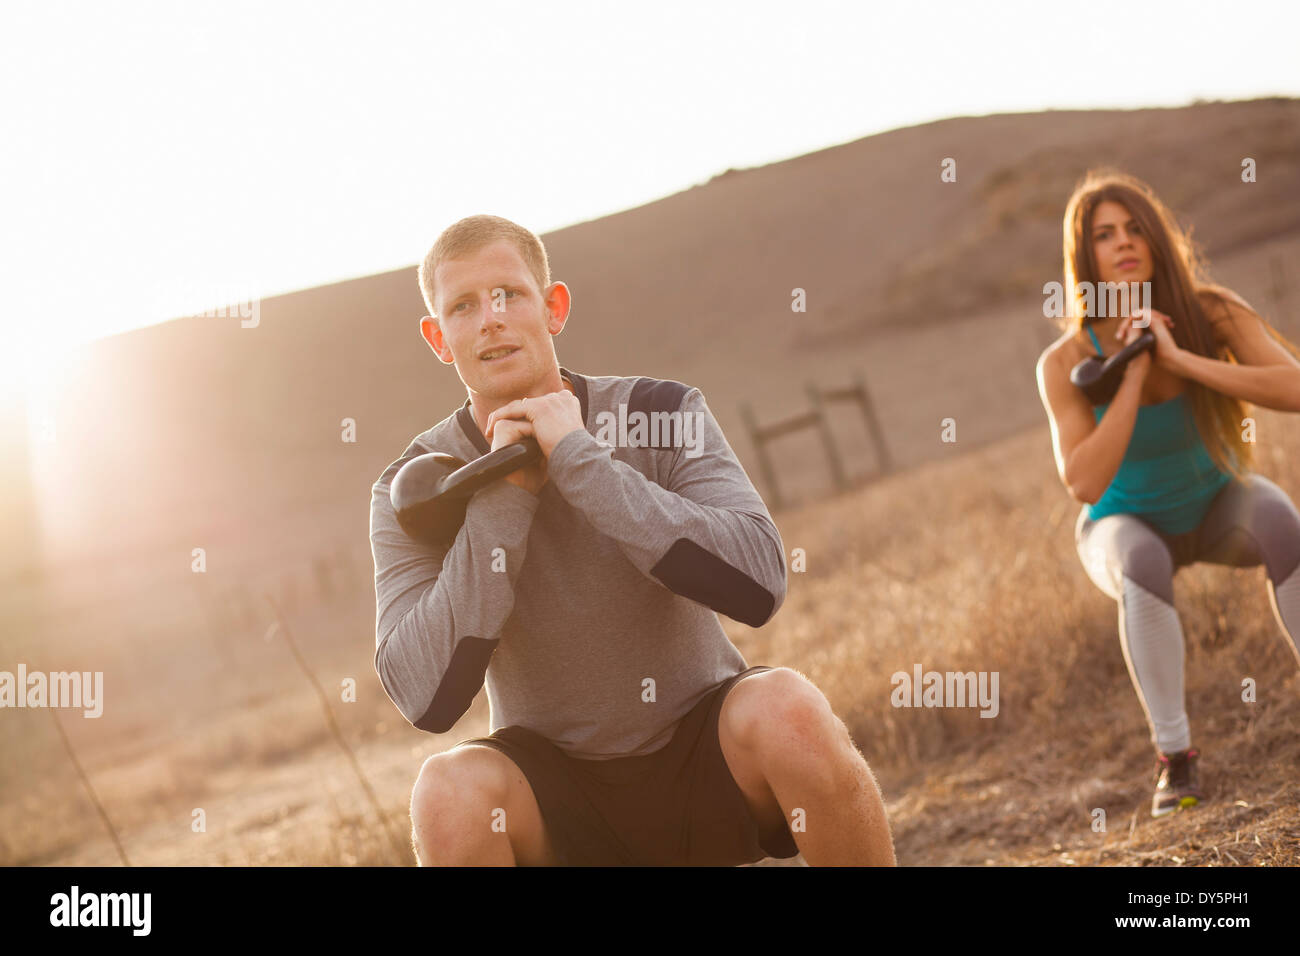 Couple working out with weights Photo Stock